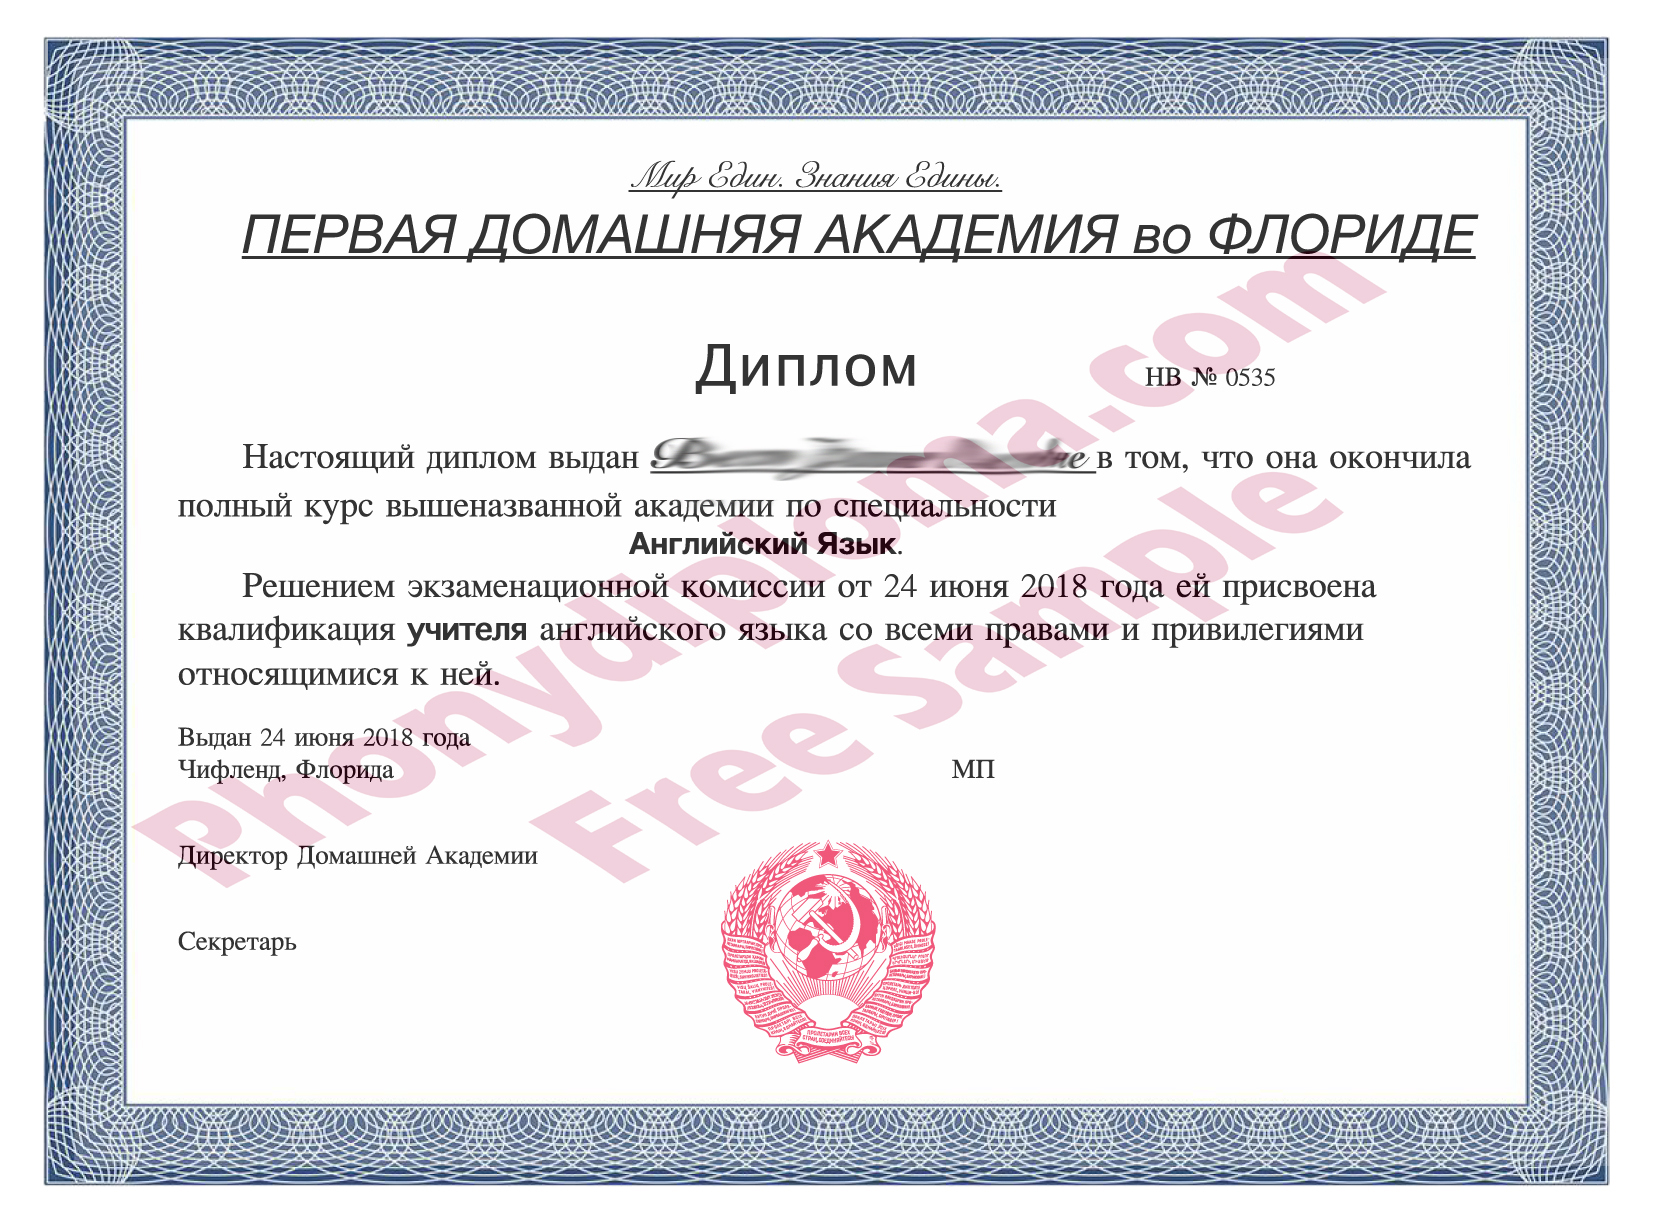 Russian Fake Diploma Sample Phony Diploma